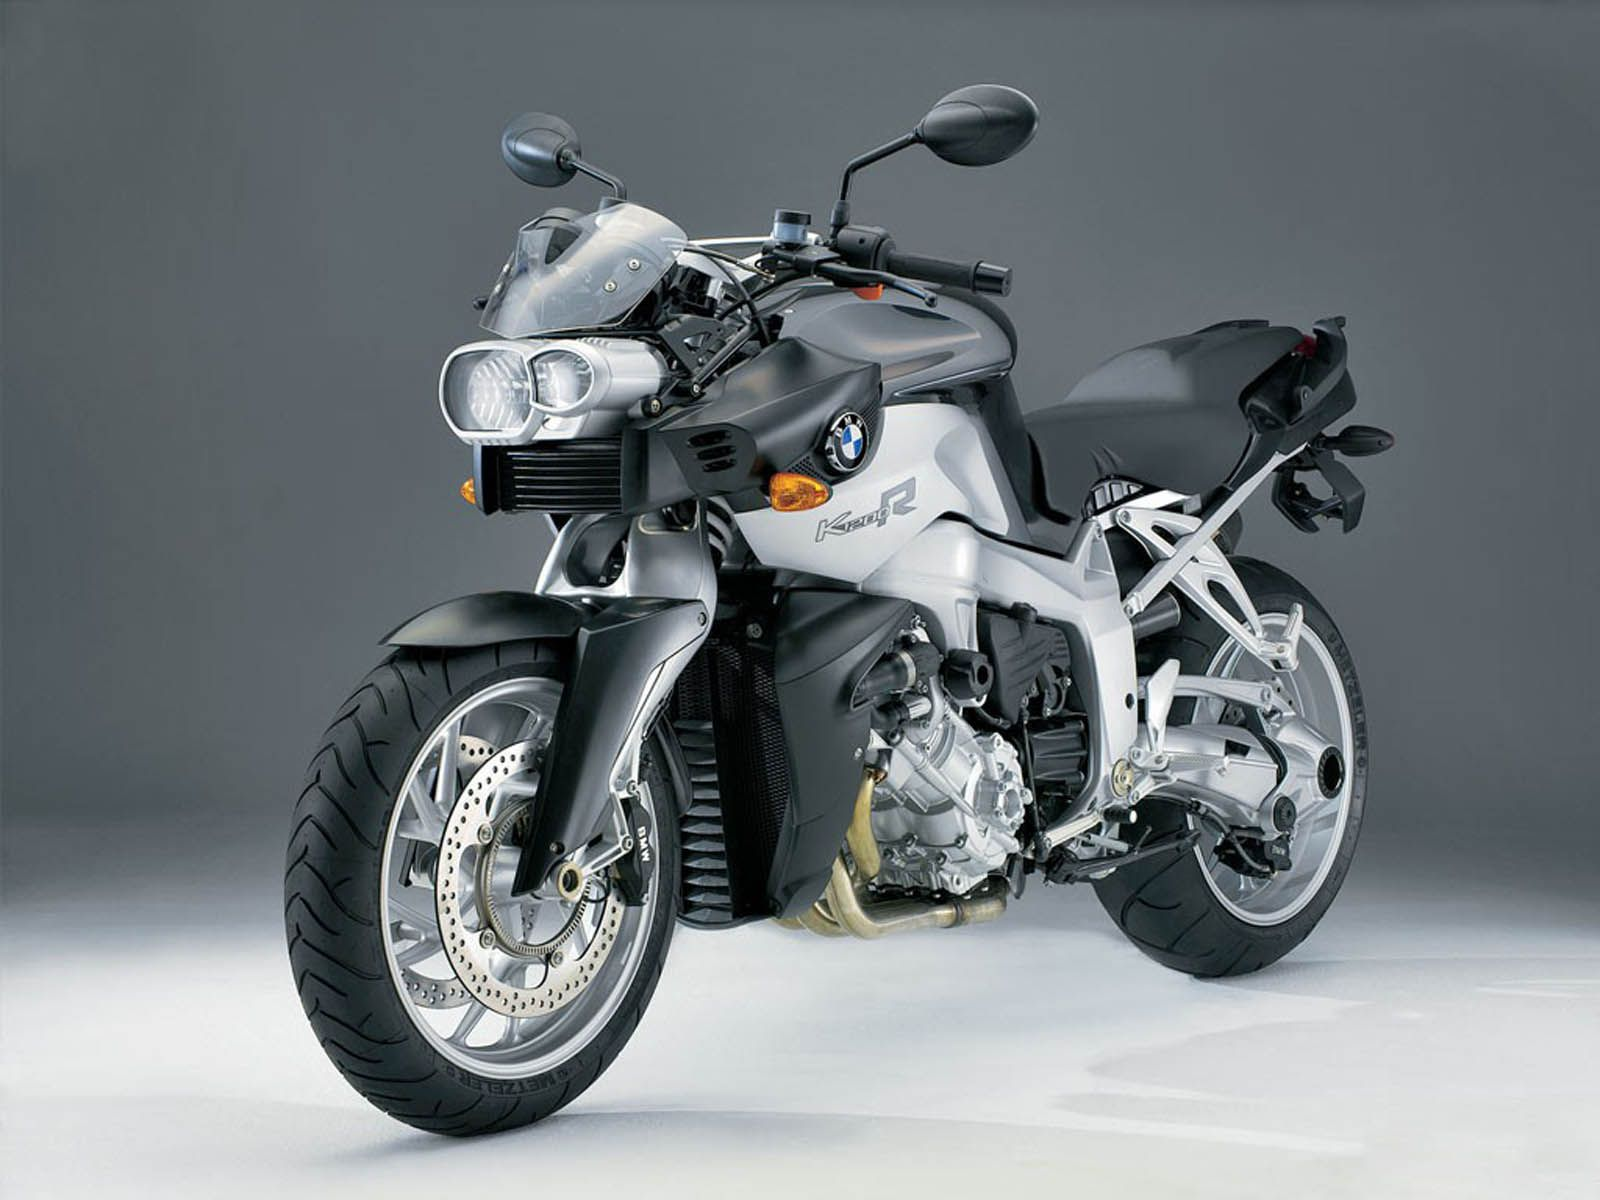 4be3e635291bb368700d161dfa9b9da2 Extraordinary Bmw R 1200 R Street Fighter Cars Trend